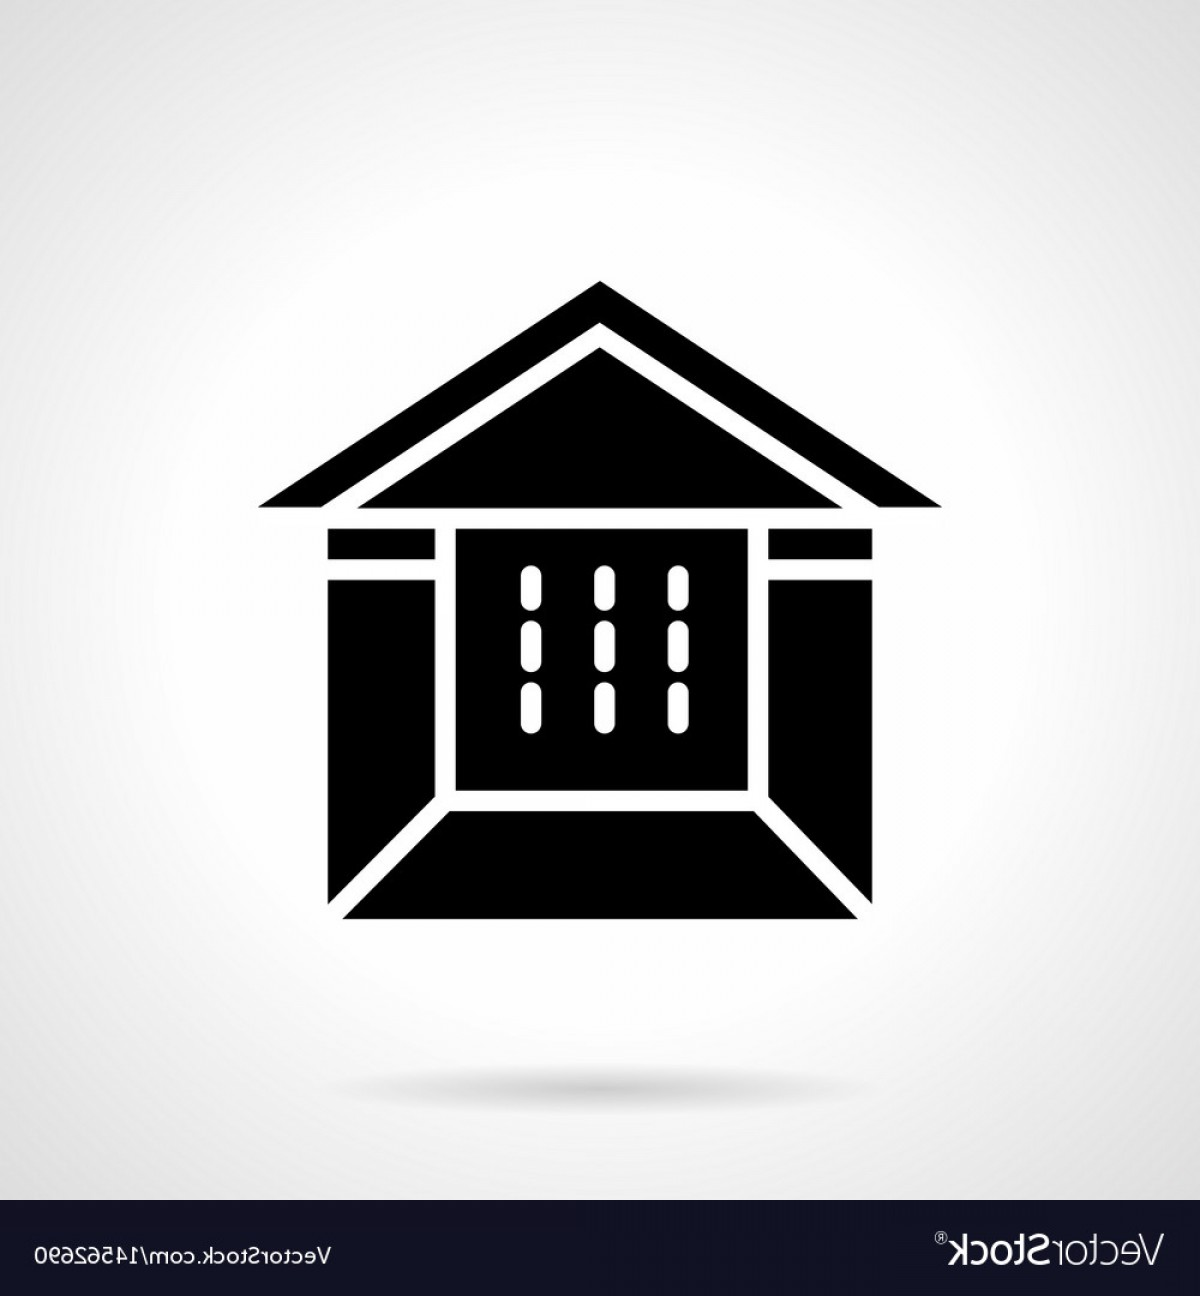 Commercial Booth Vector: Tent Booth Glyph Style Icon Vector